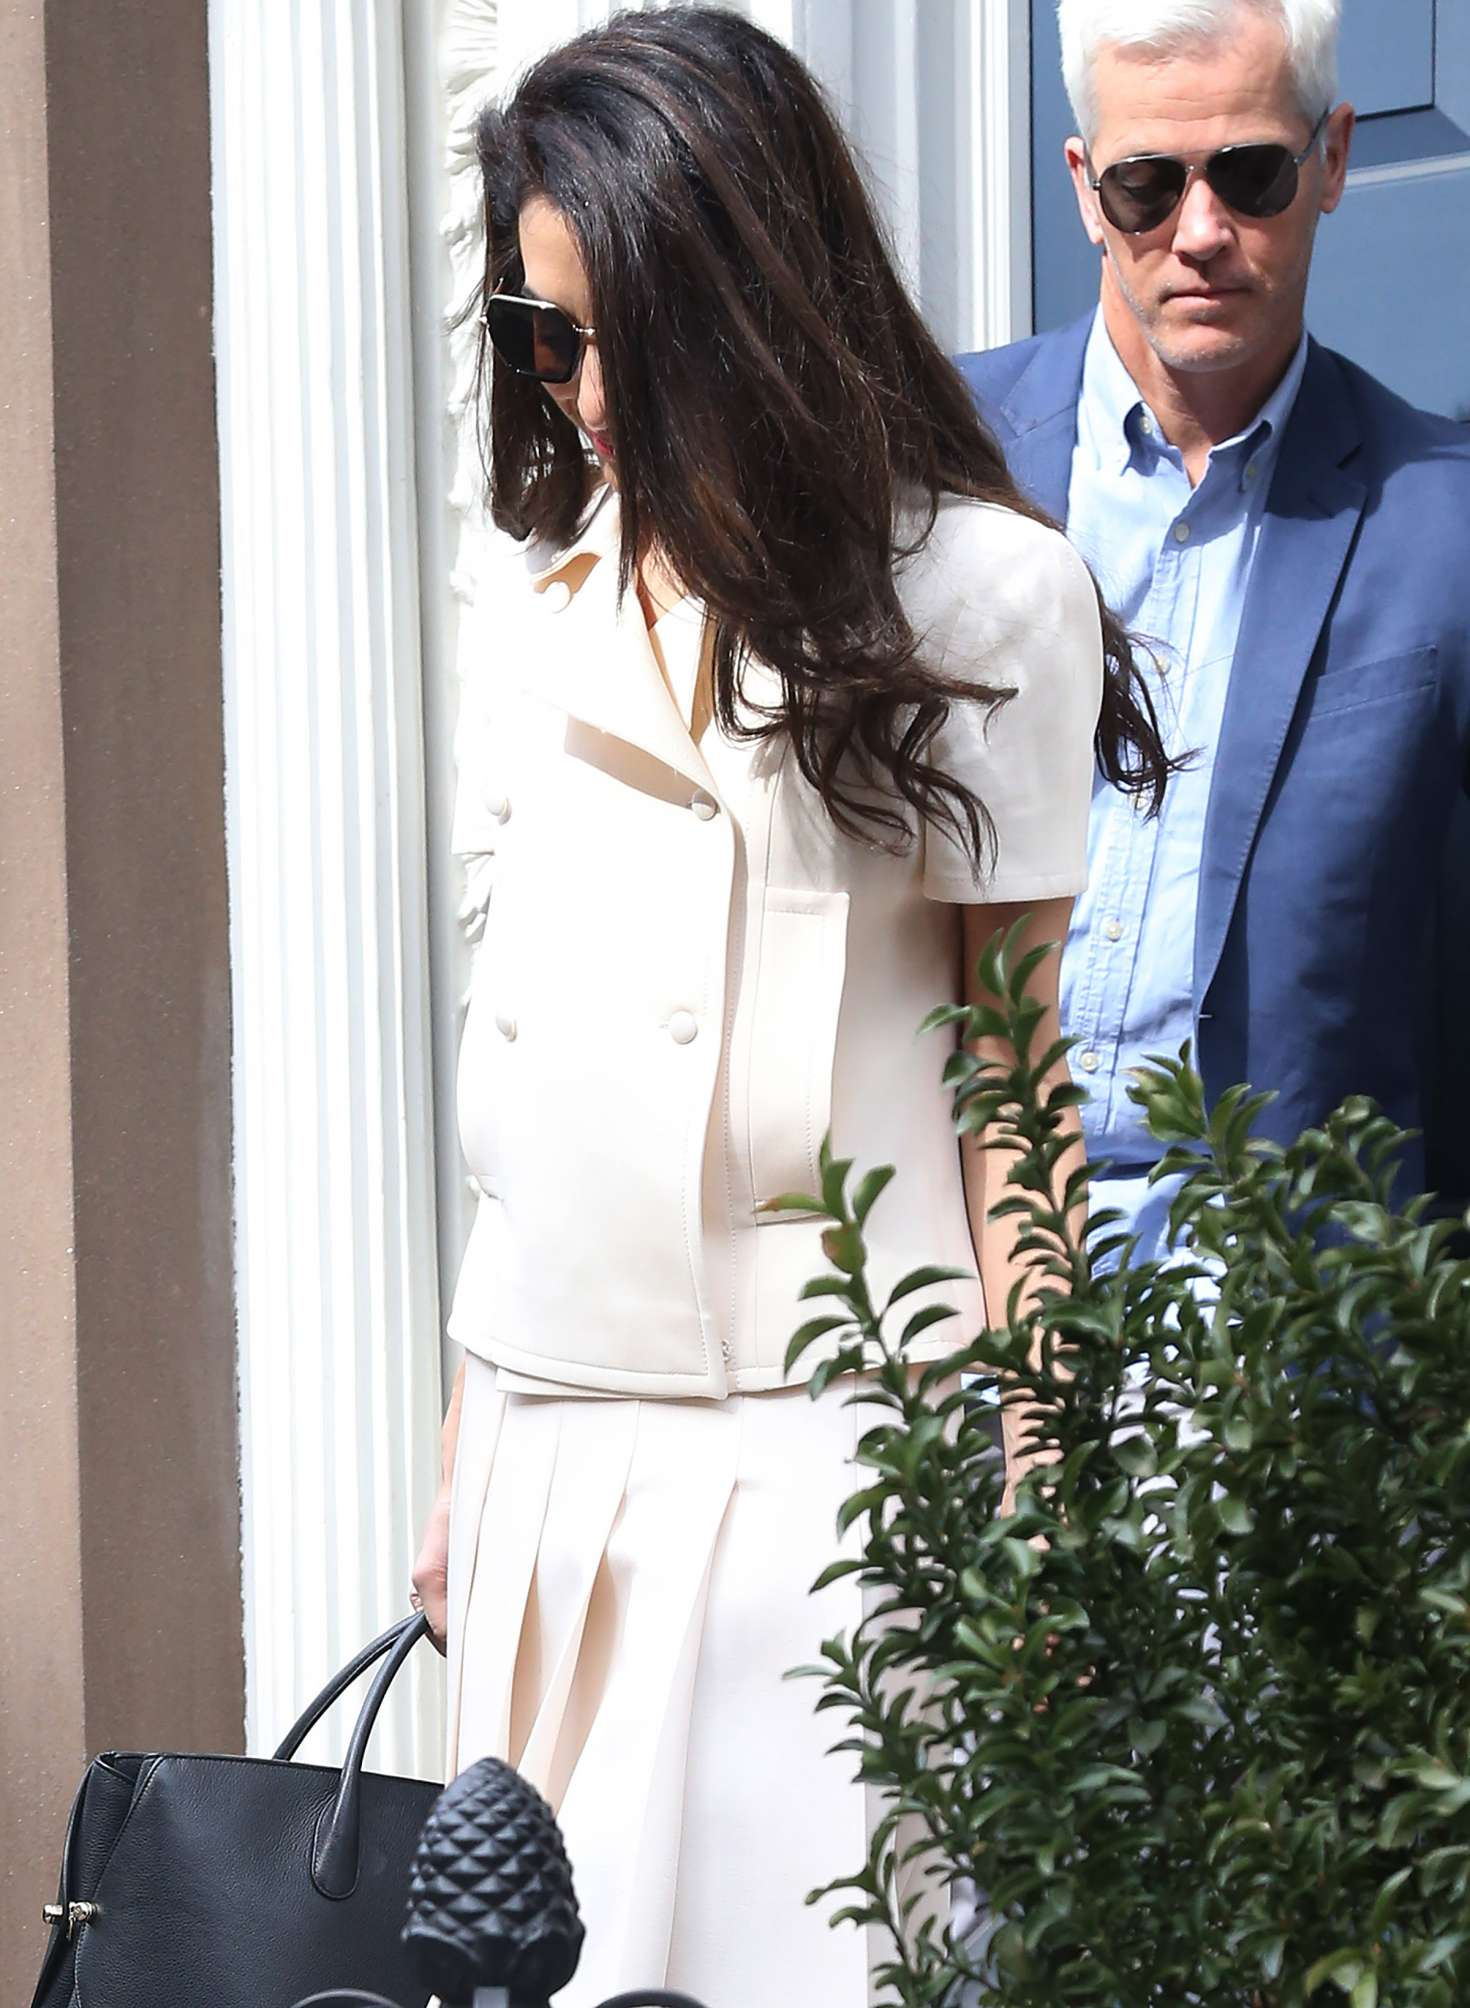 Amal Clooney out in New York City